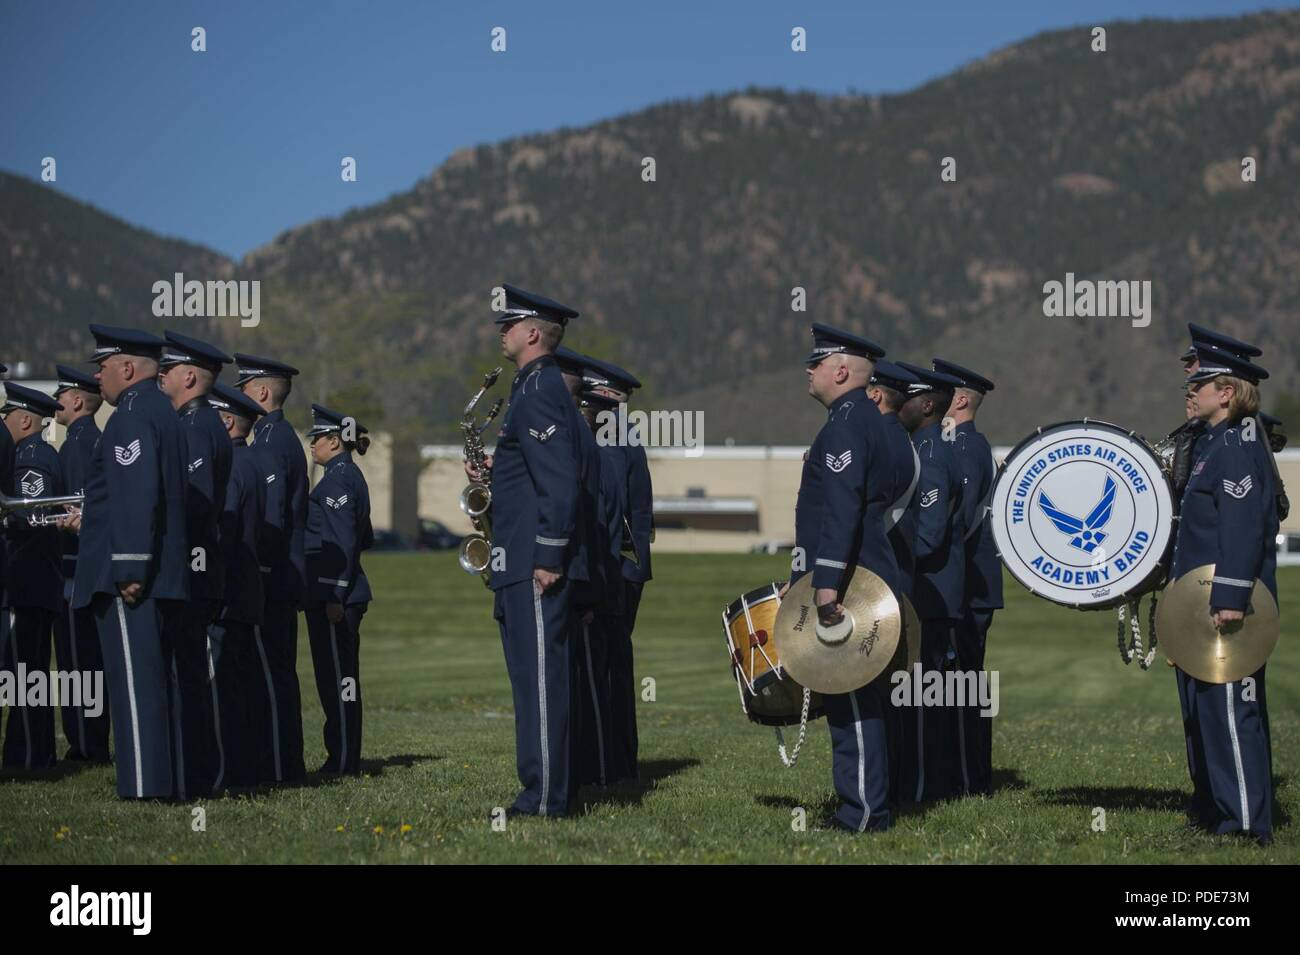 The U S  Air Force Academy Band stands at attention moments